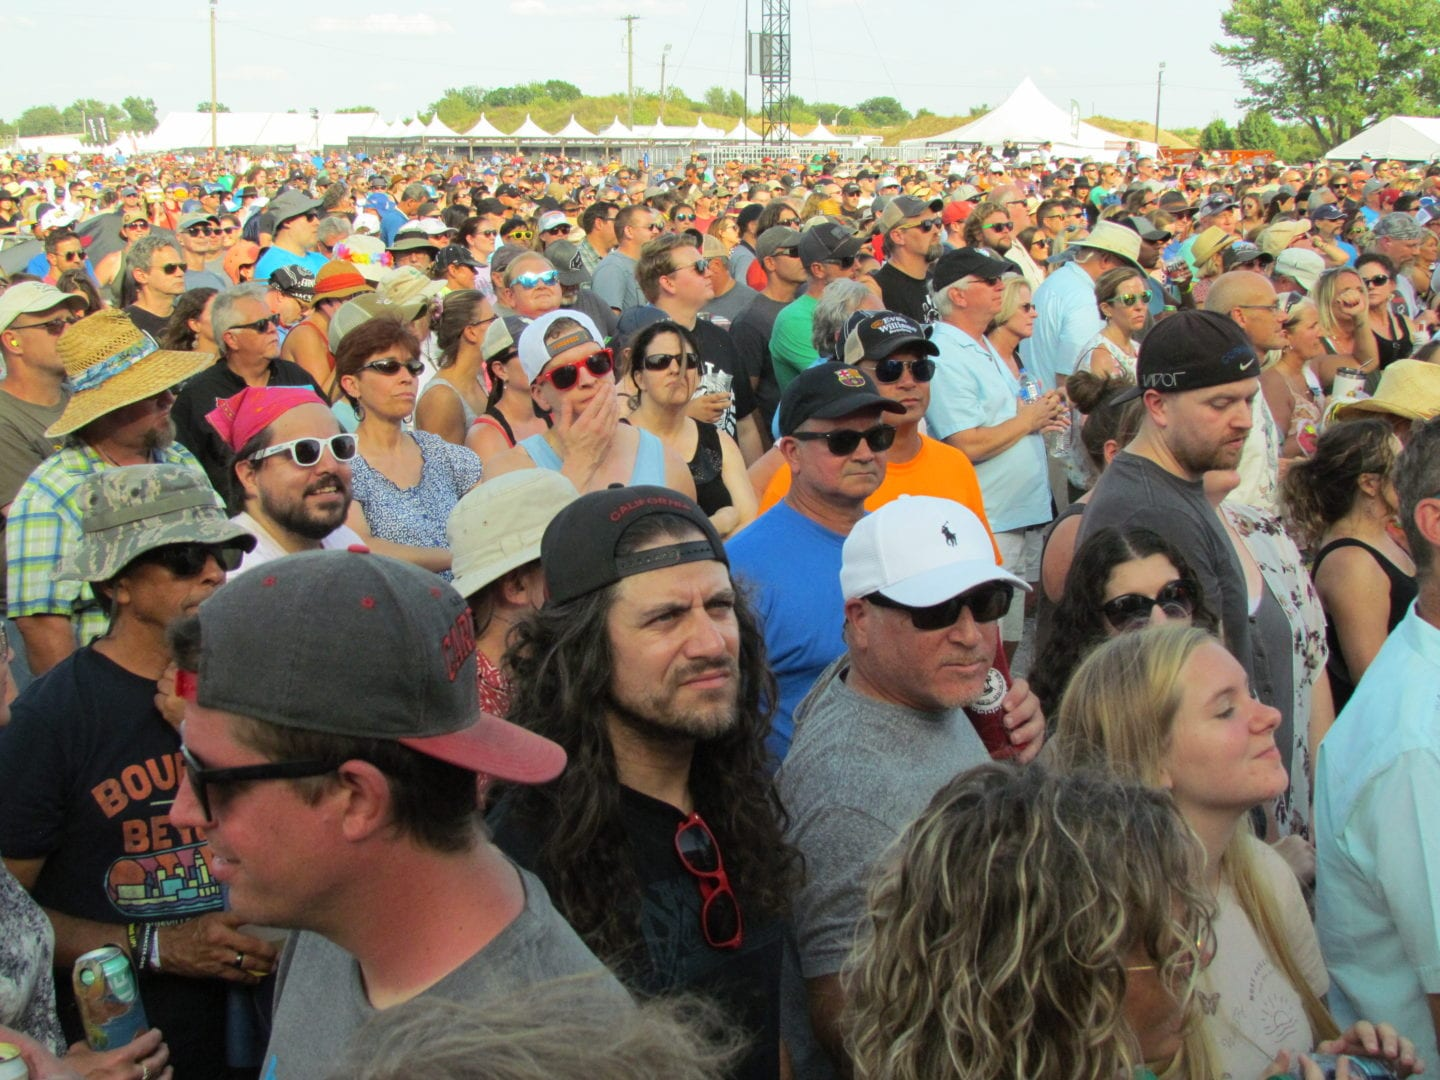 The crowds watching for the performance